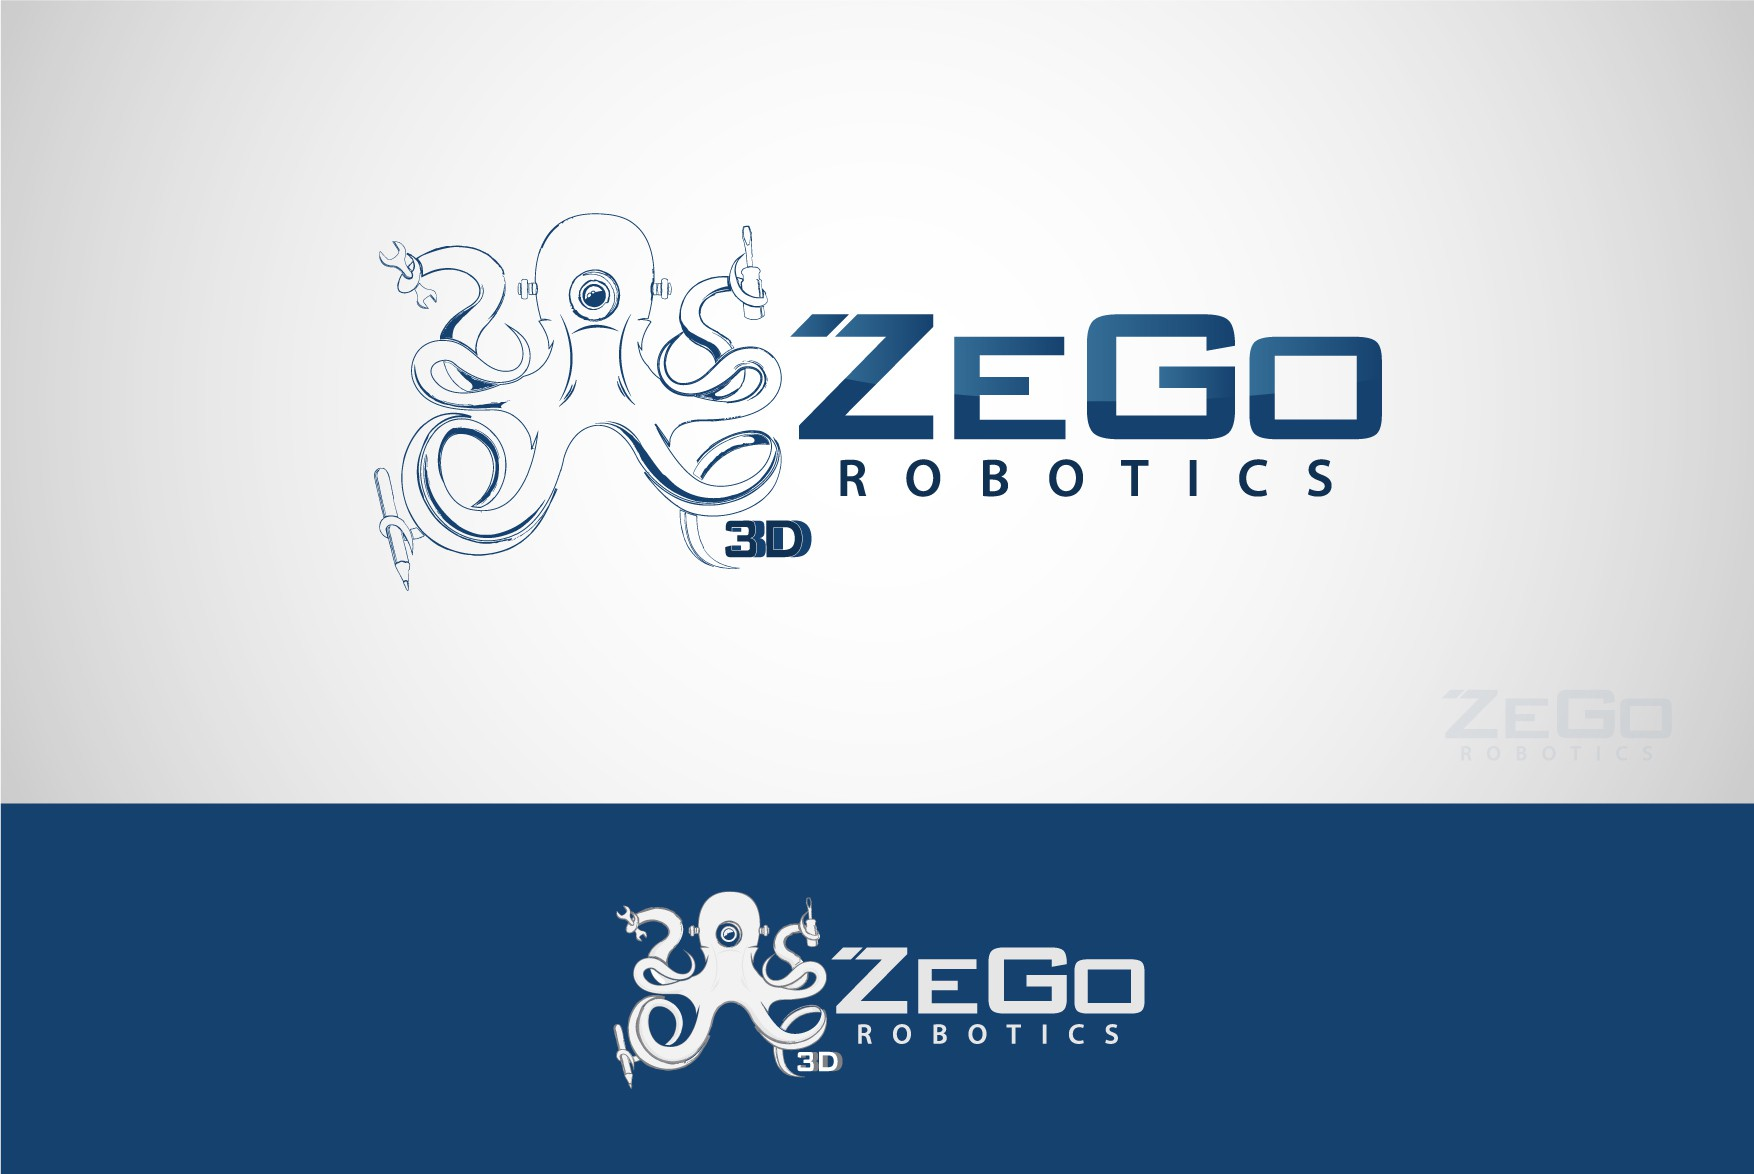 We need awesome logo for our robot.